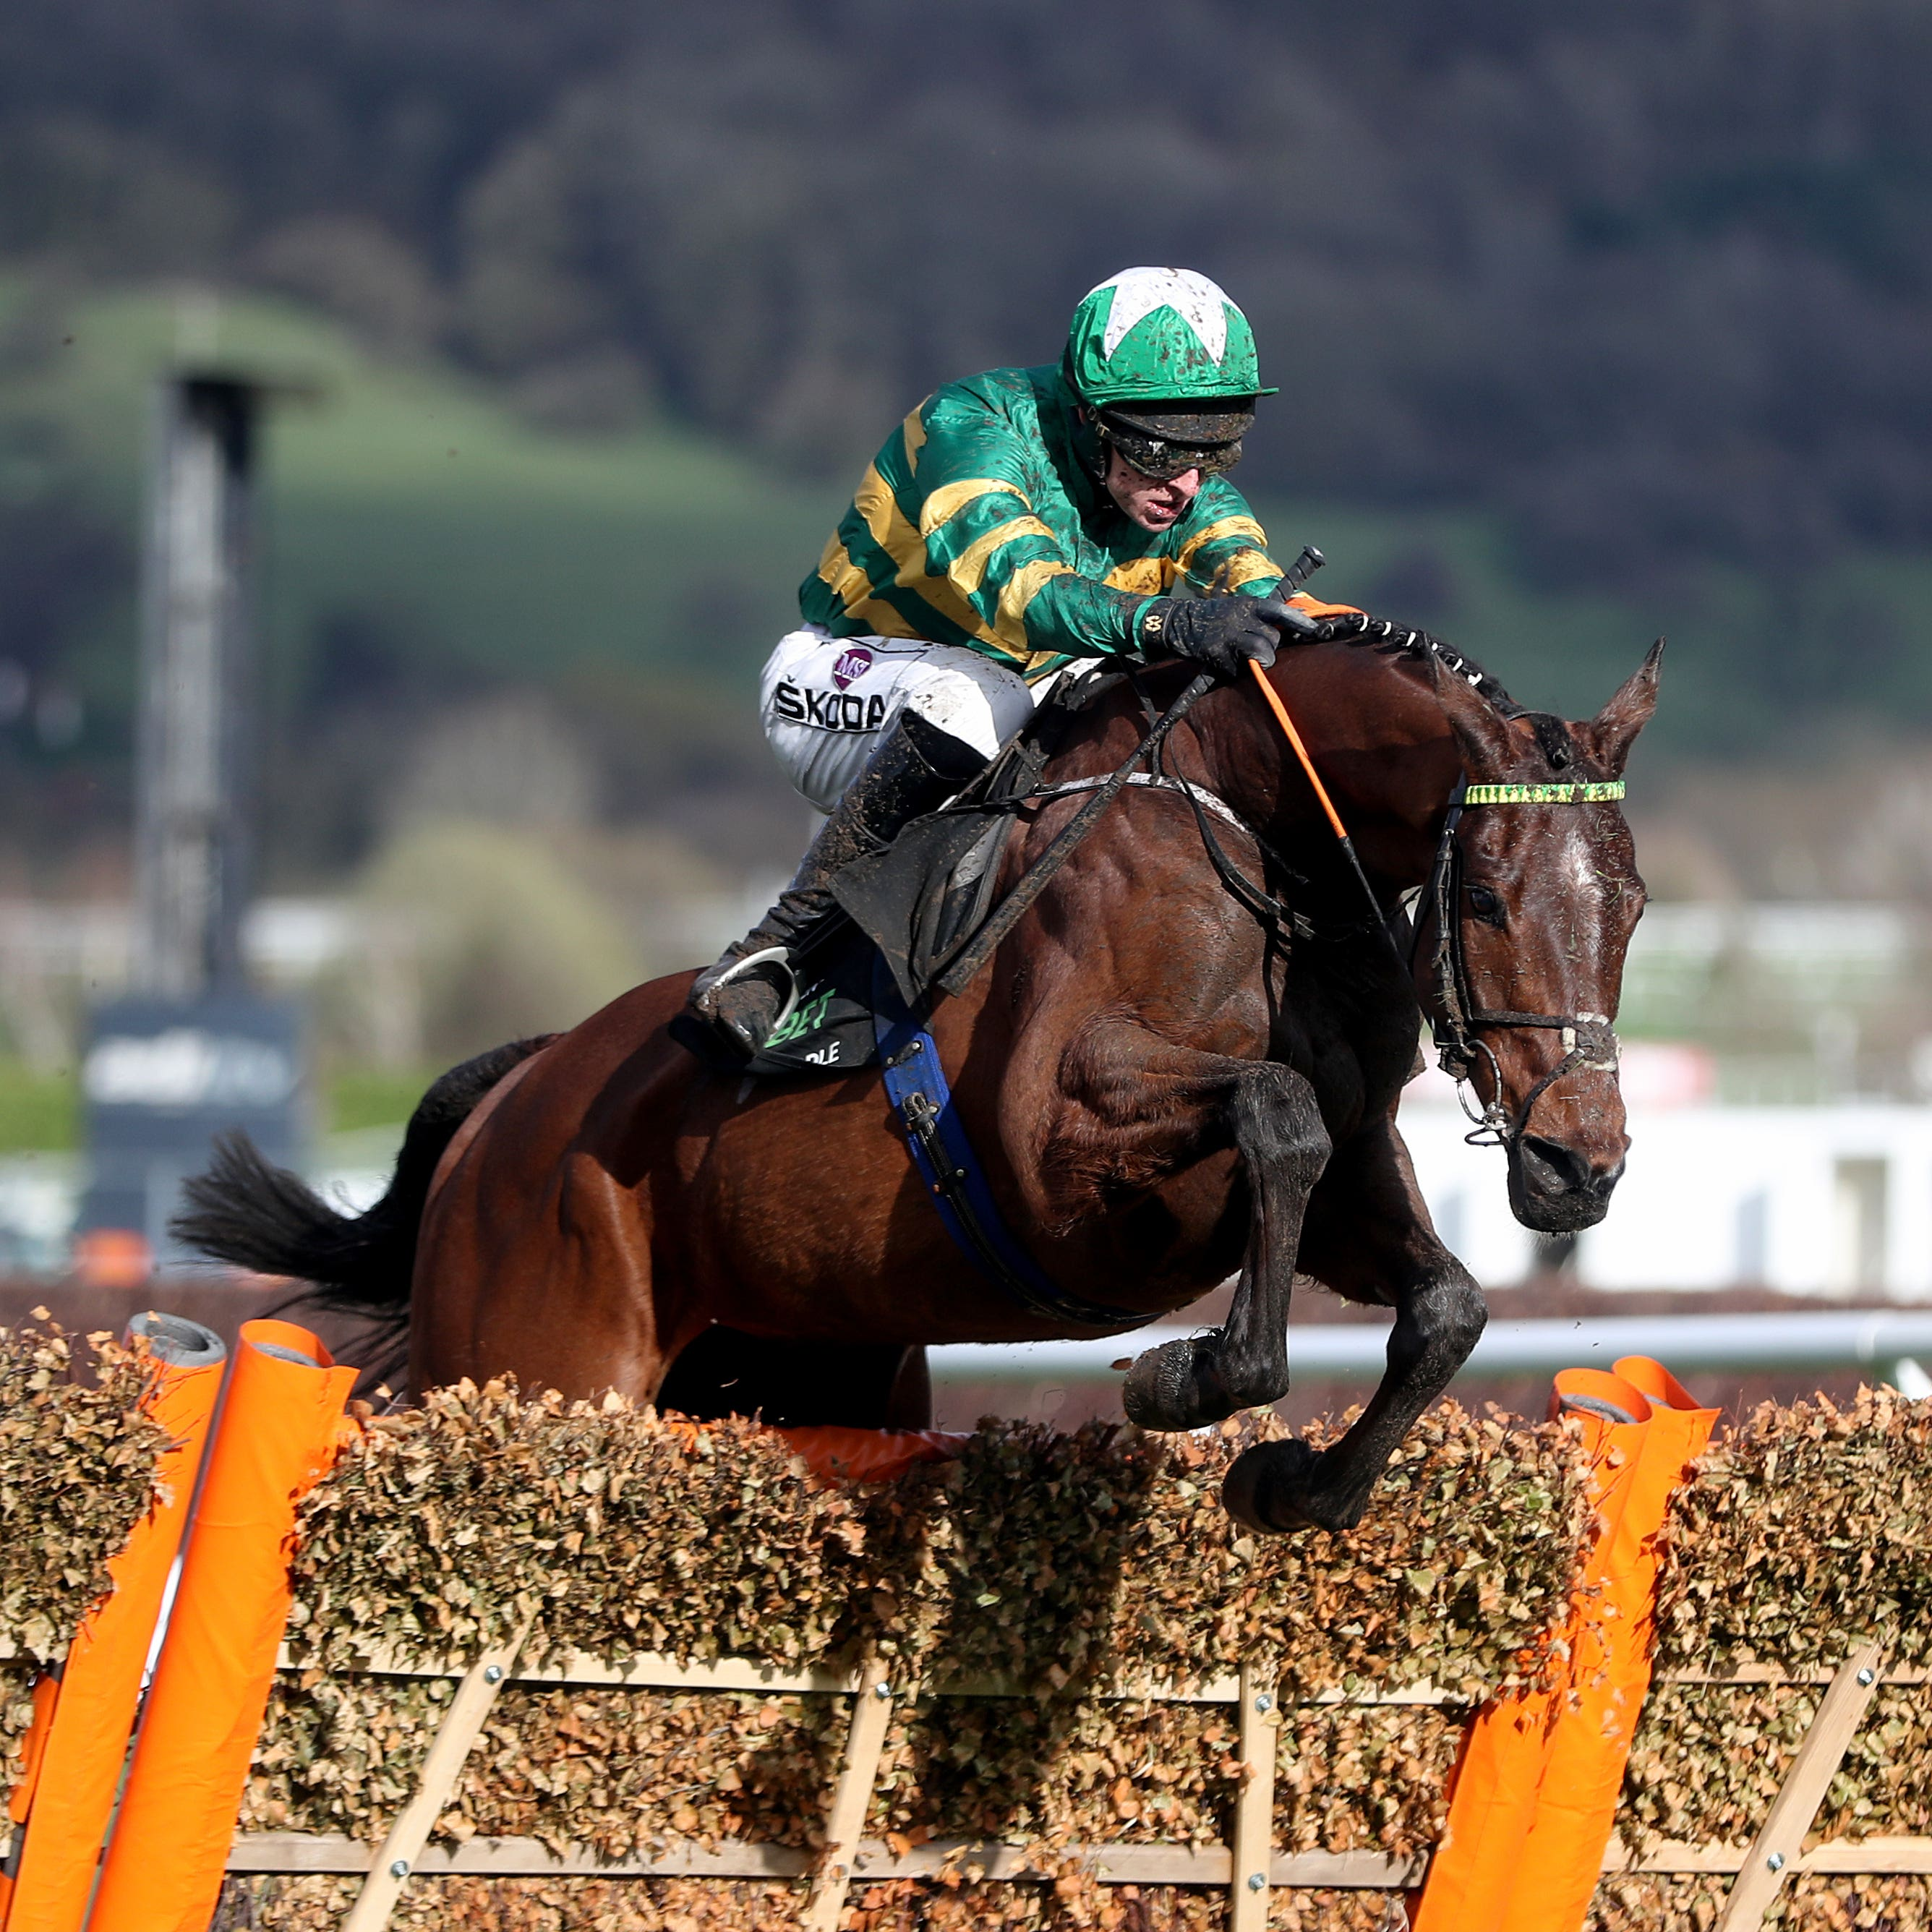 Espoir D'Allen powered to victory in the Champion Hurdle